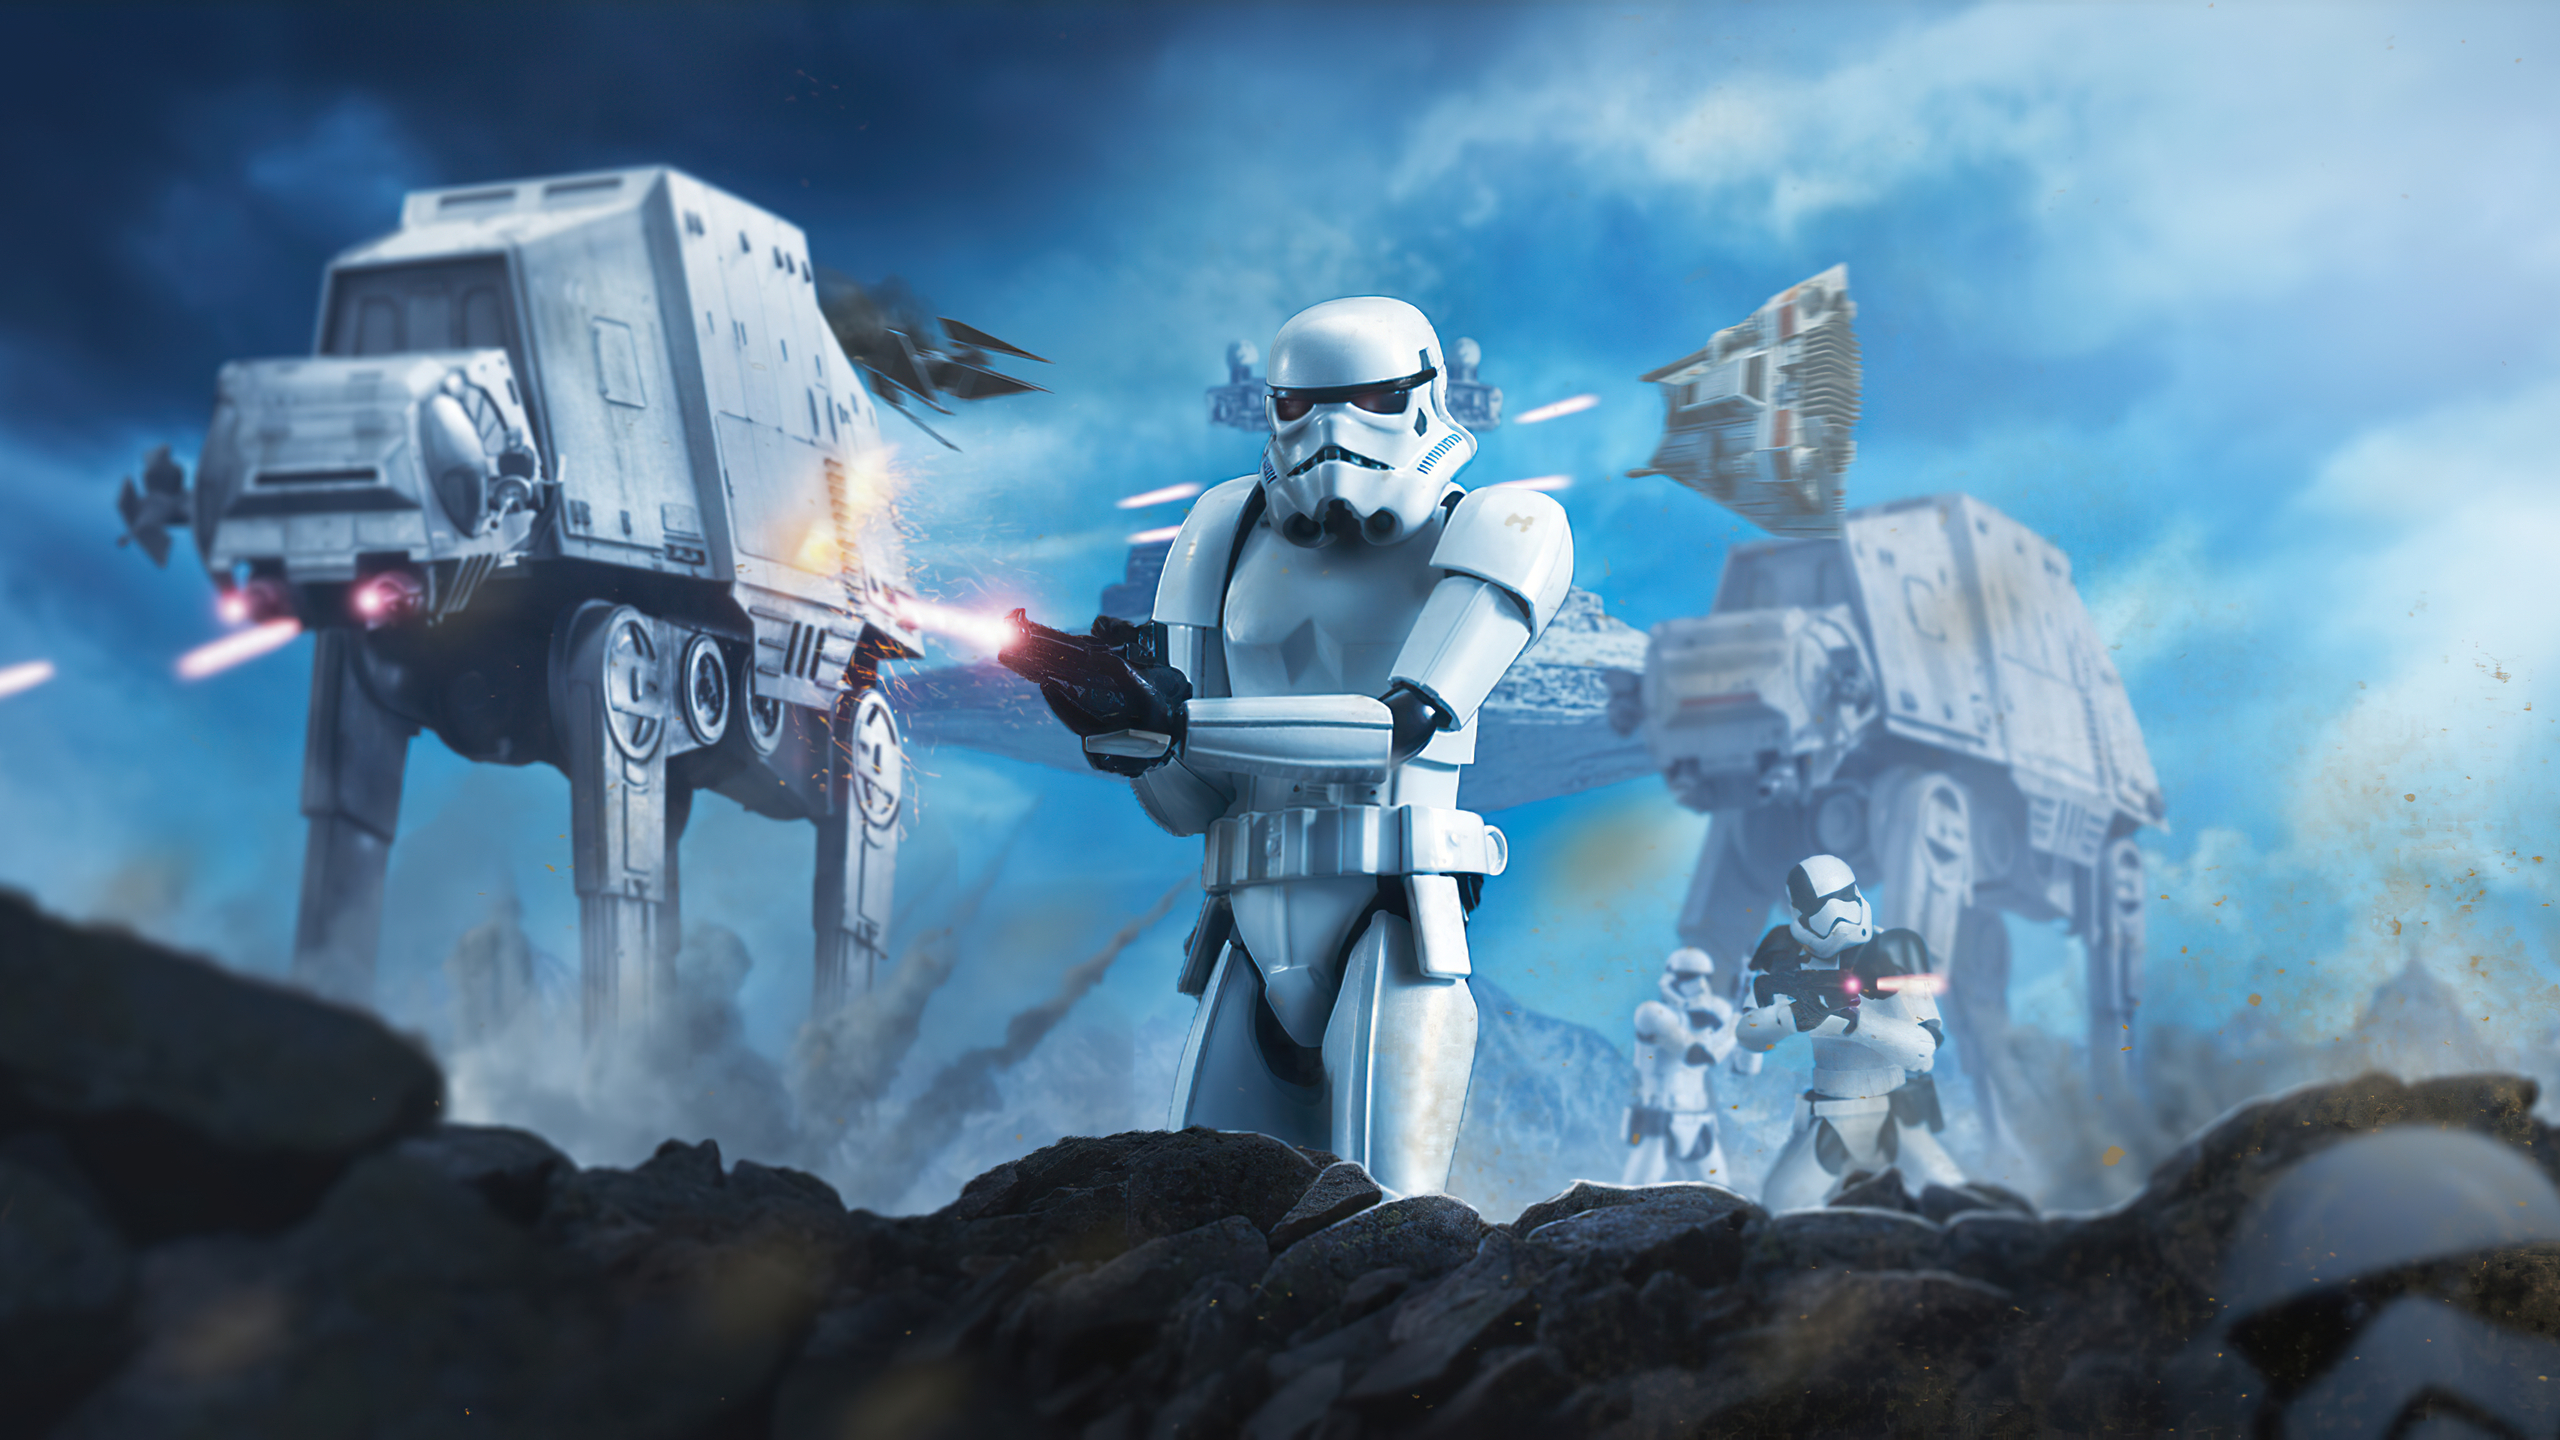 2560x1440 Star Wars Battle Of Hoth 1440p Resolution Hd 4k Wallpapers Images Backgrounds Photos And Pictures